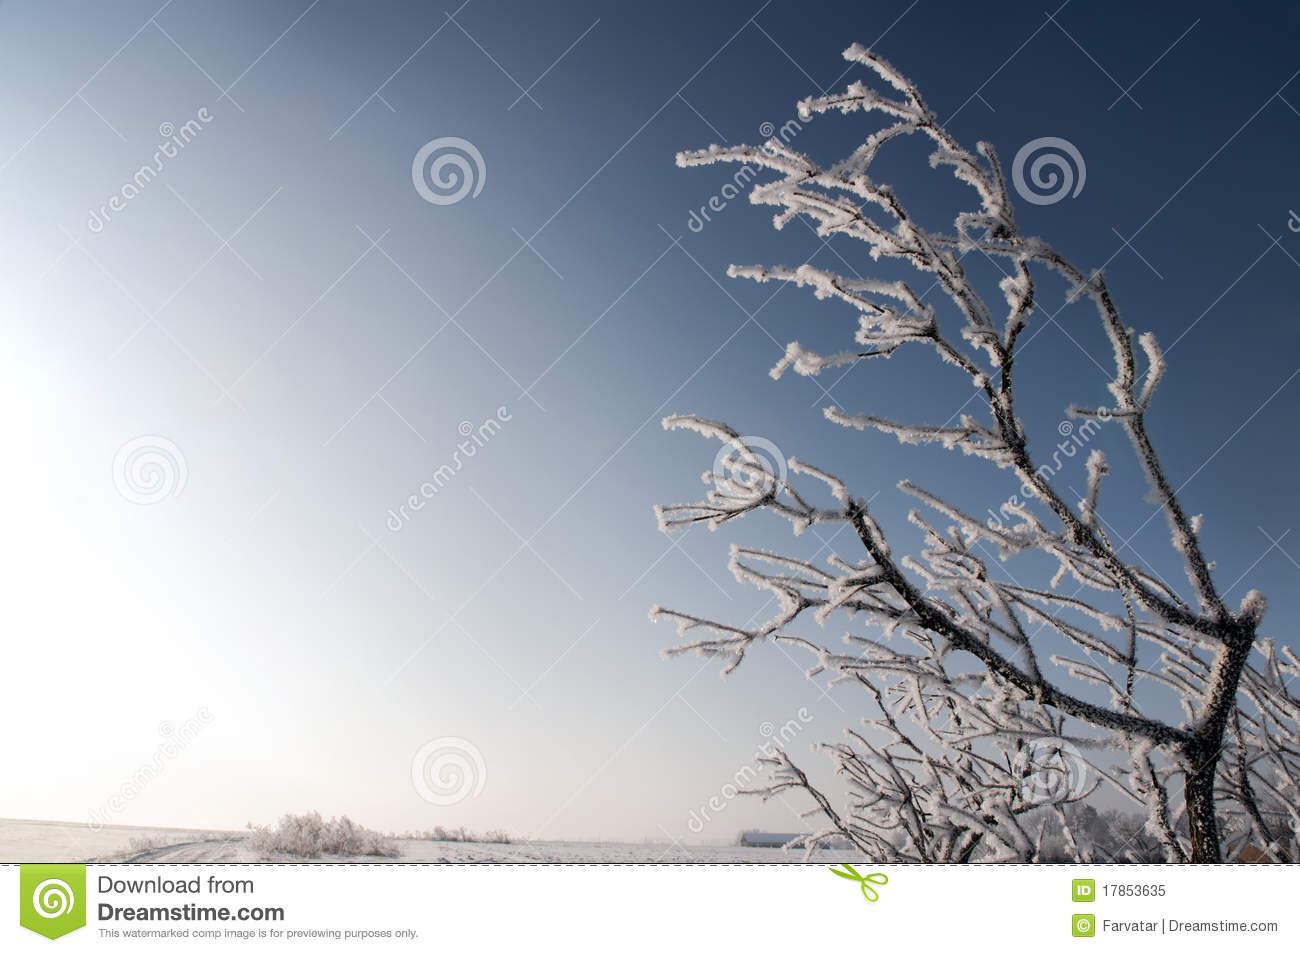 Frozen branch stock image. Image of january, nature ...